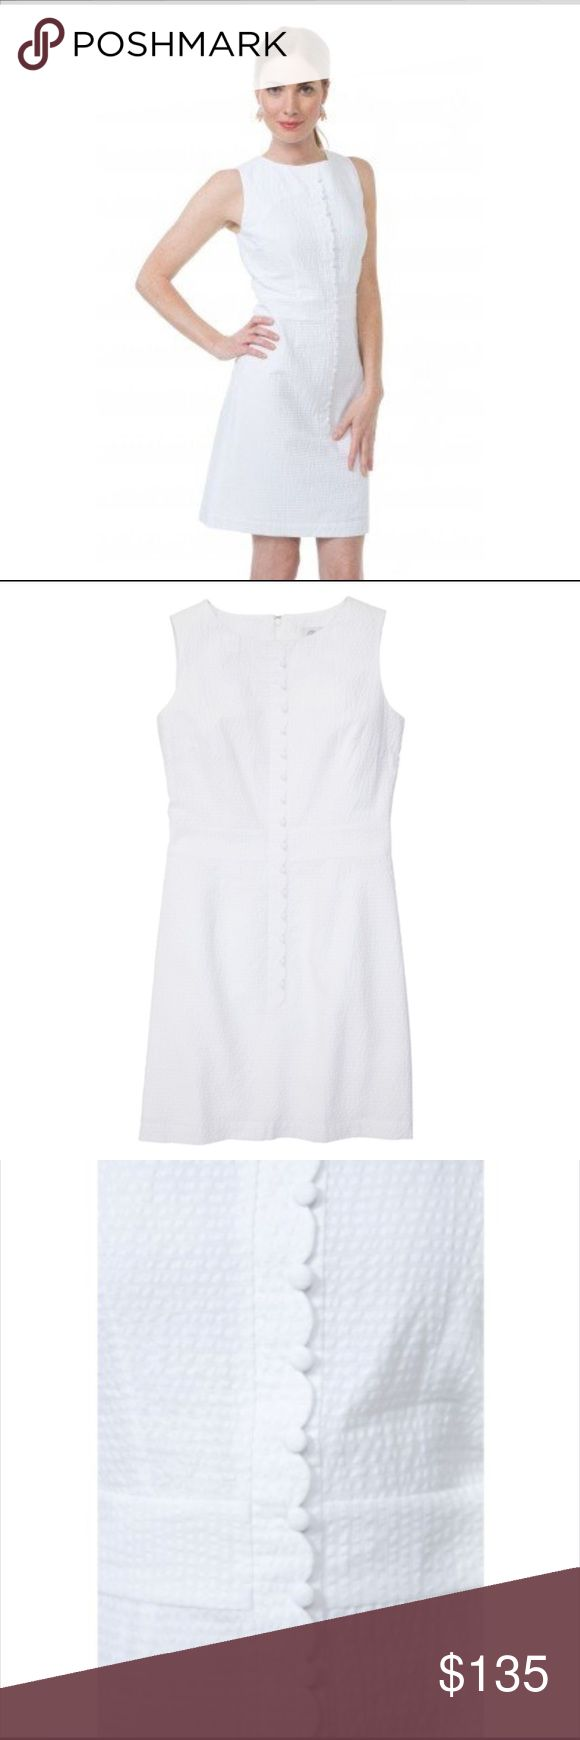 Southern Proper White Dress Southern Proper White Seersucker Scallop Dress.  NWT.  Adorable dress for Spring and Summer.  Where this to an all white party, brunch, country club or boating day.   Match this dress with a gorgeous pair of Tory Burch Sandals.  Take a look at my closet for size and color. Southern Proper Dresses Midi